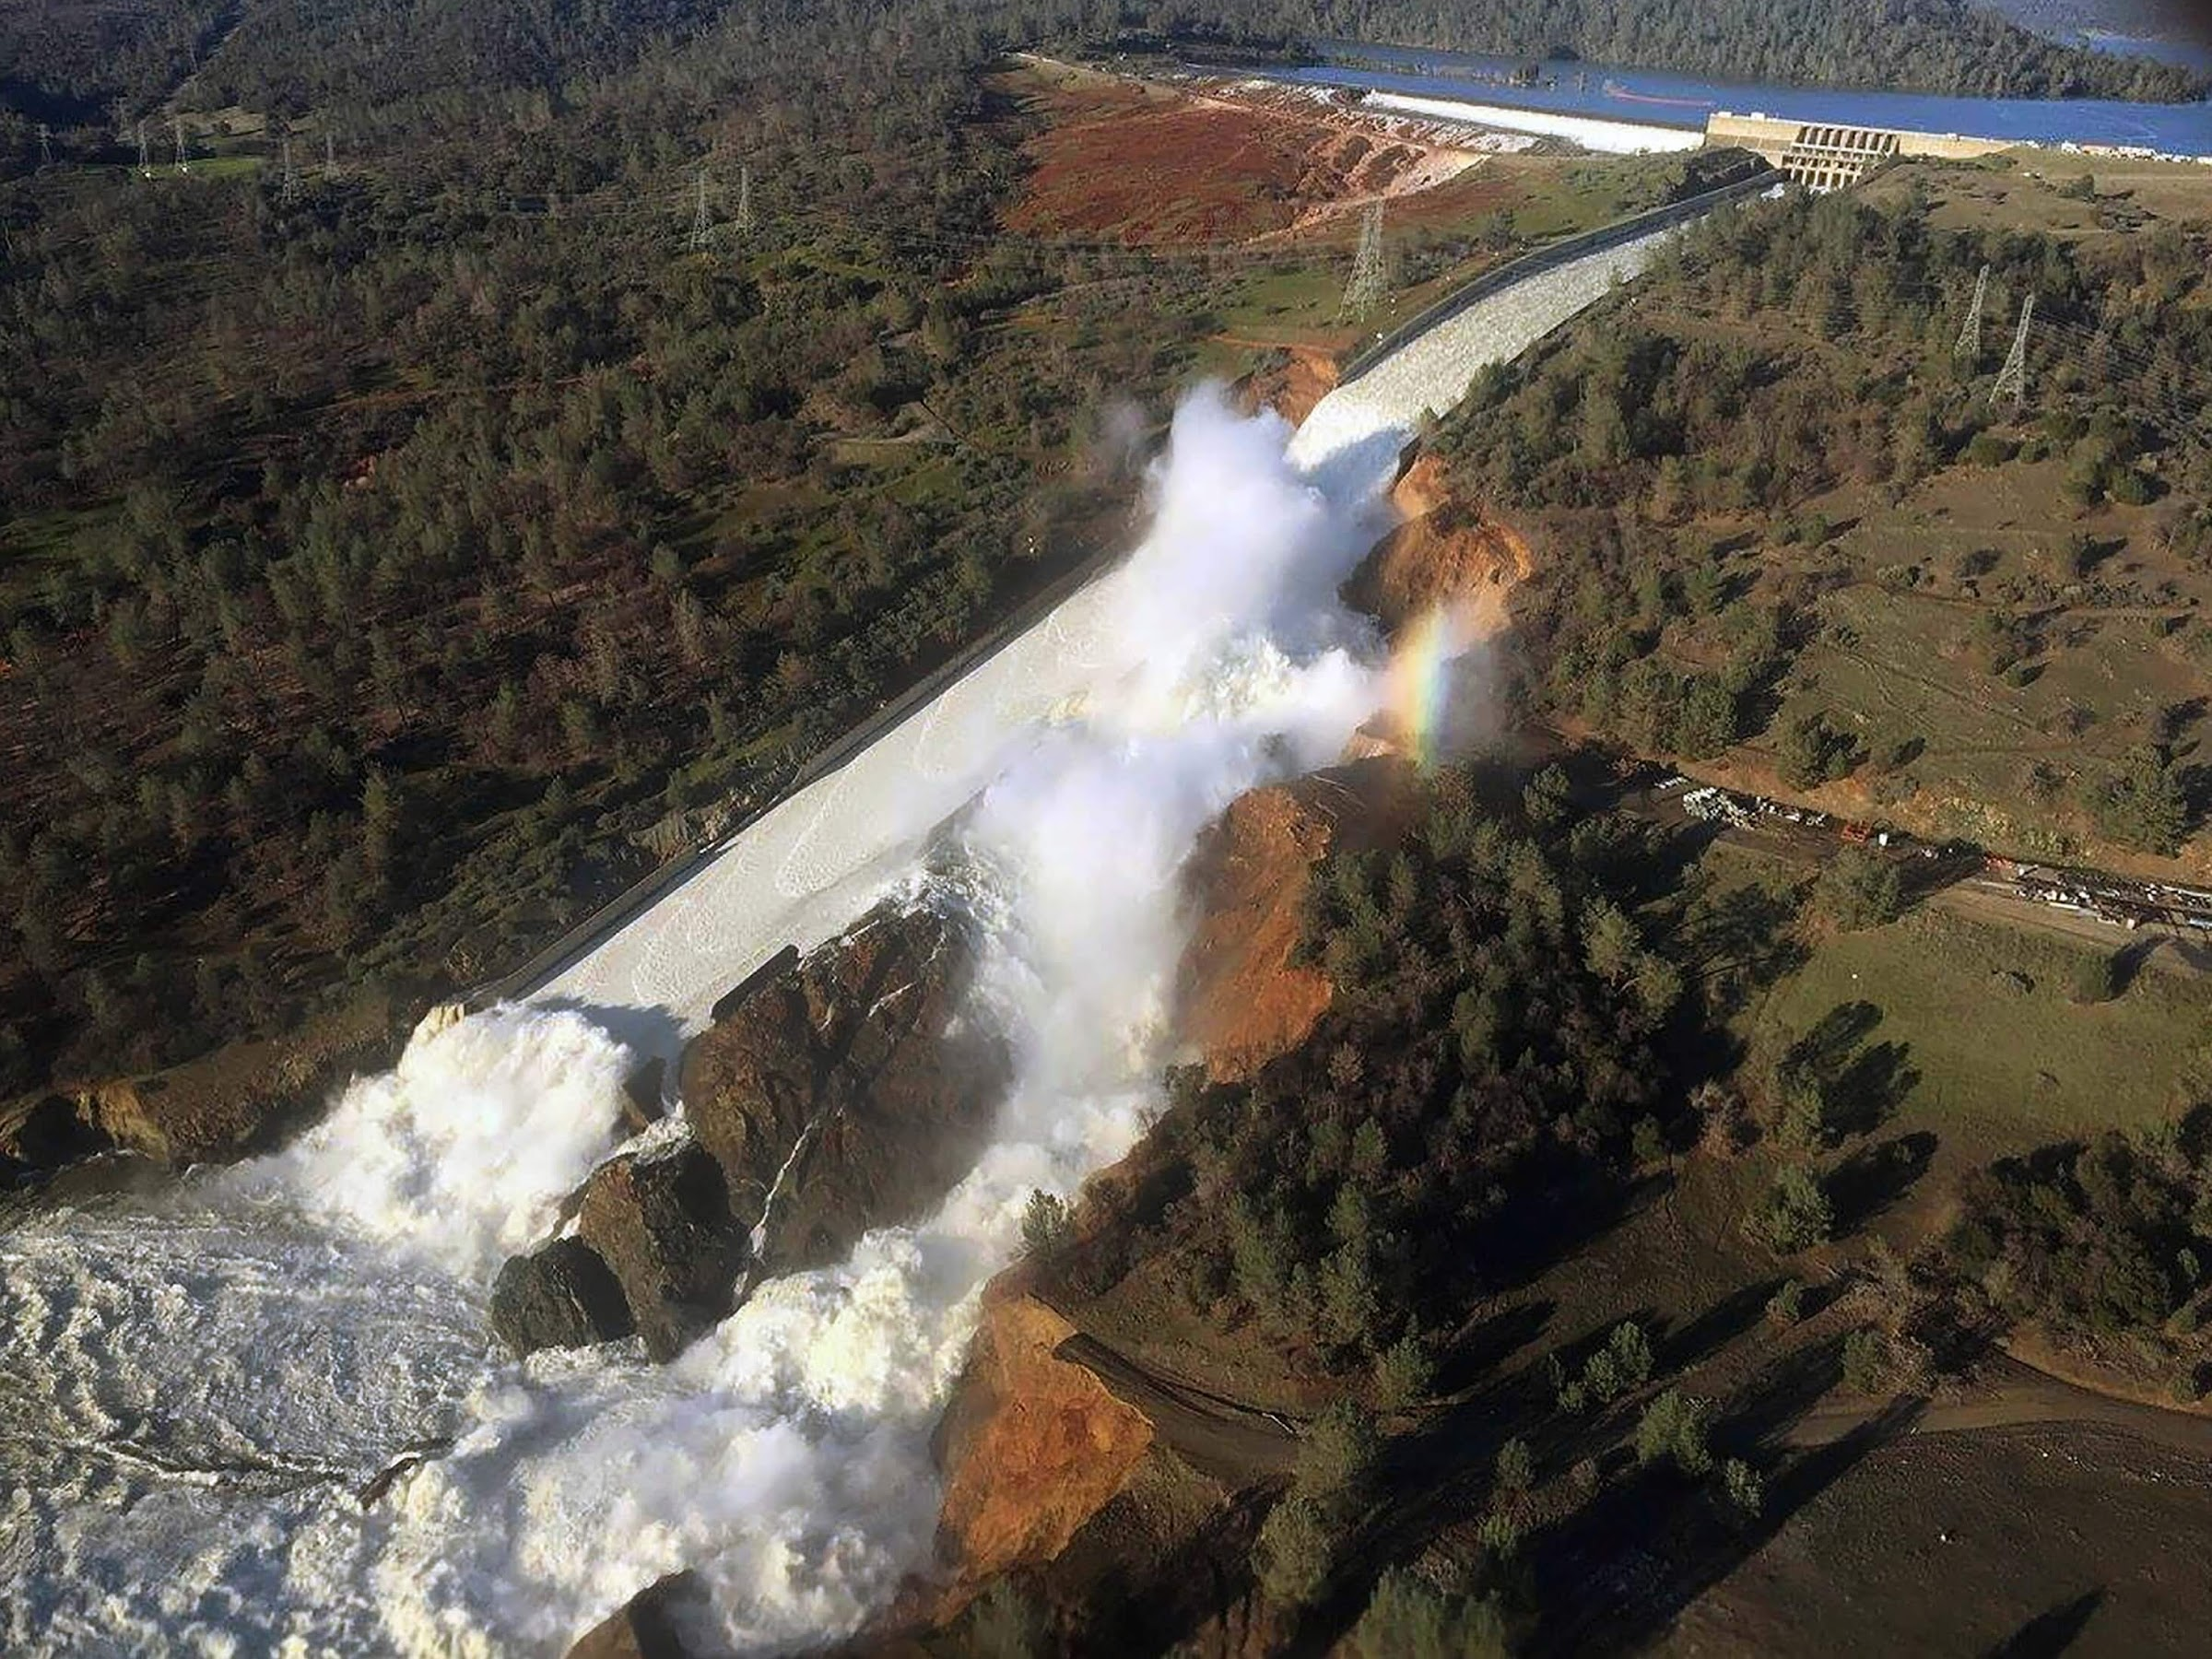 Collapse of dams